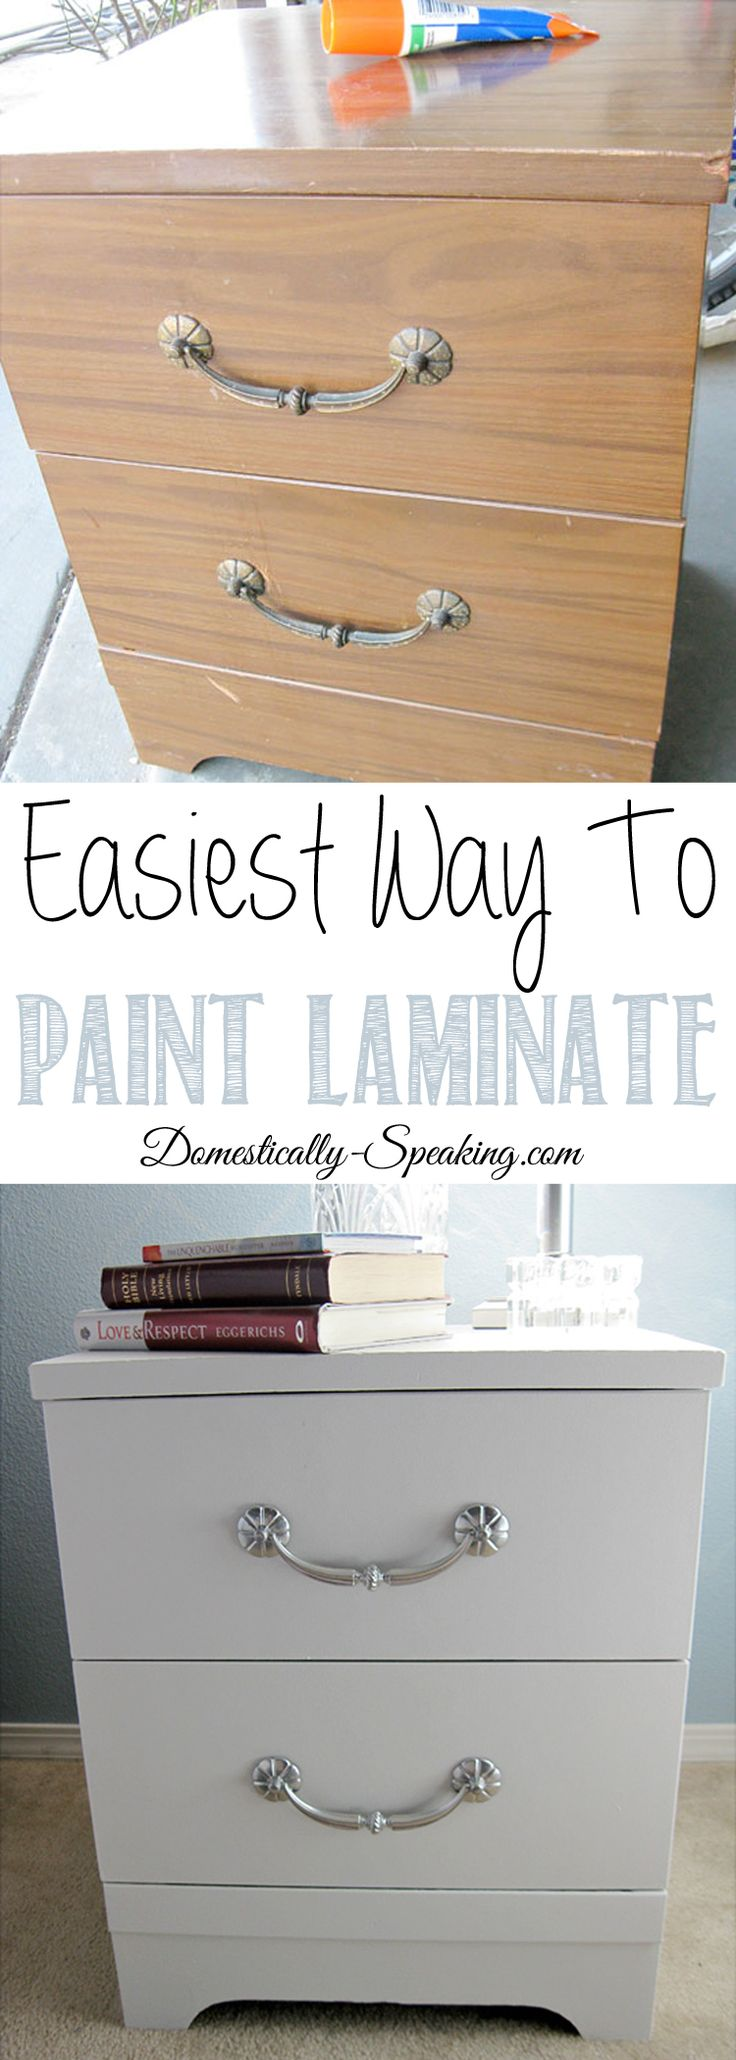 How to Paint Laminate Nightstands. Best 25  Paint laminate wood ideas on Pinterest   DIY furniture